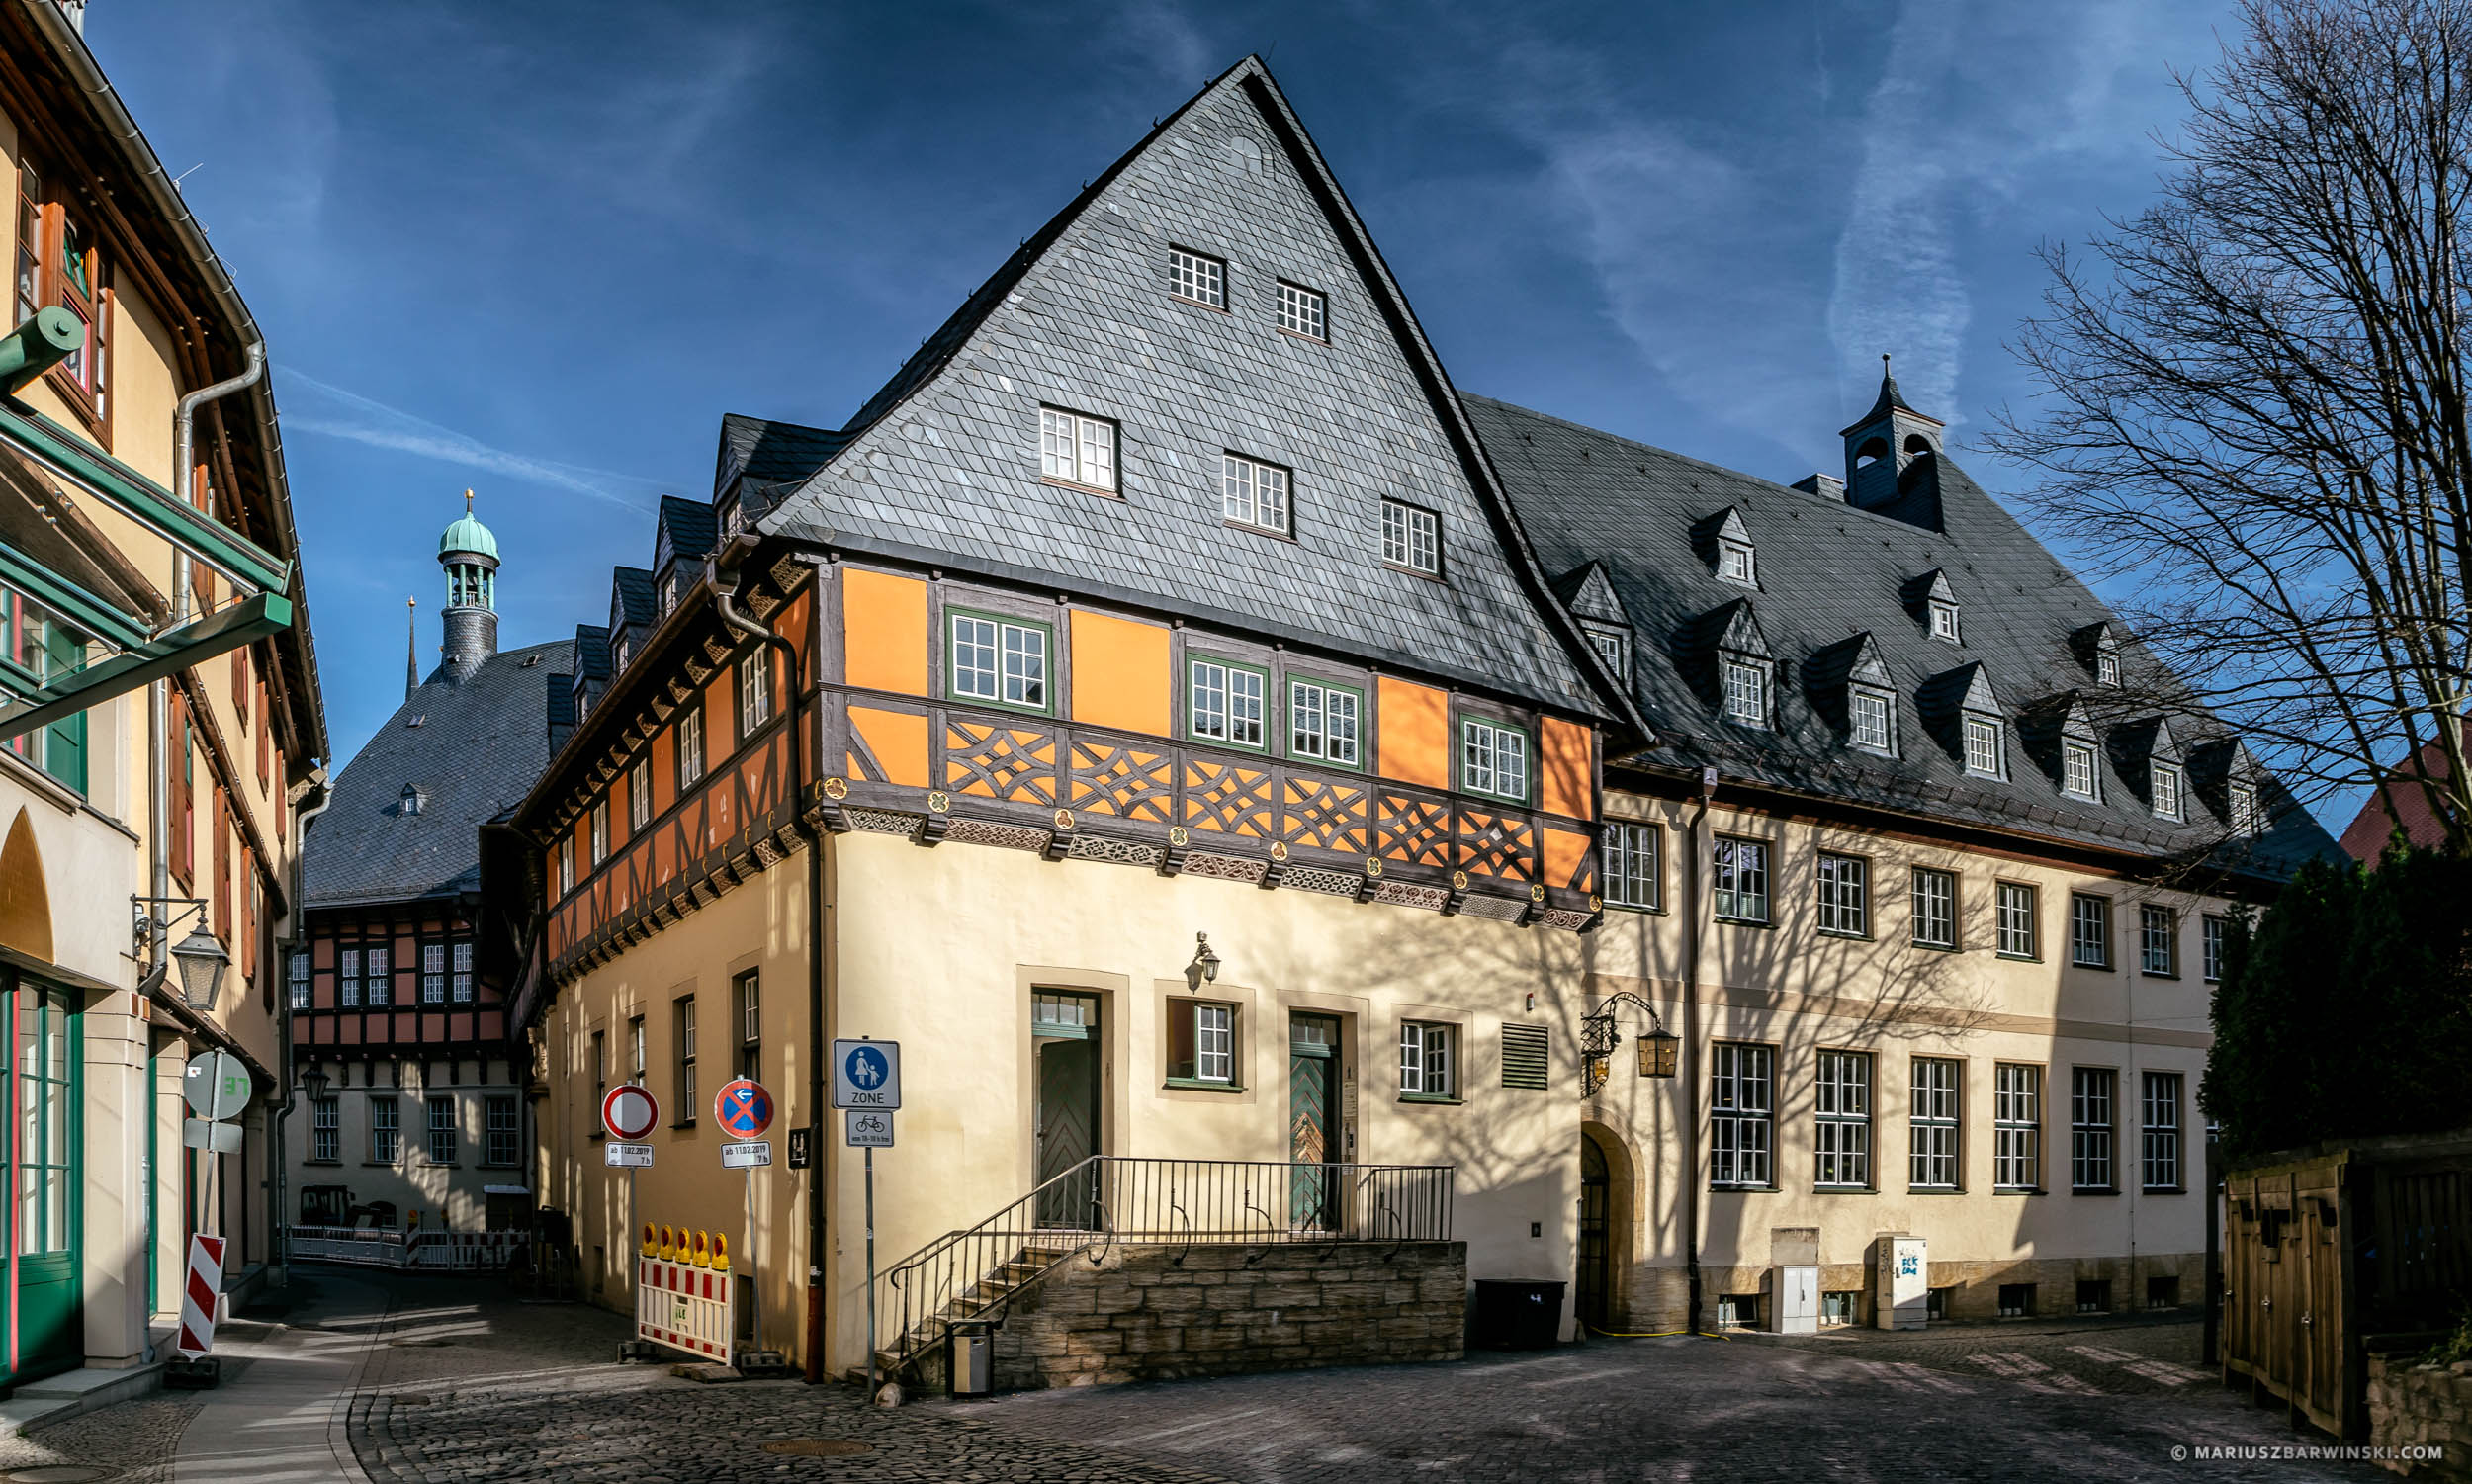 Houses in the market square in Wernigerode. Germany. Zabudowania